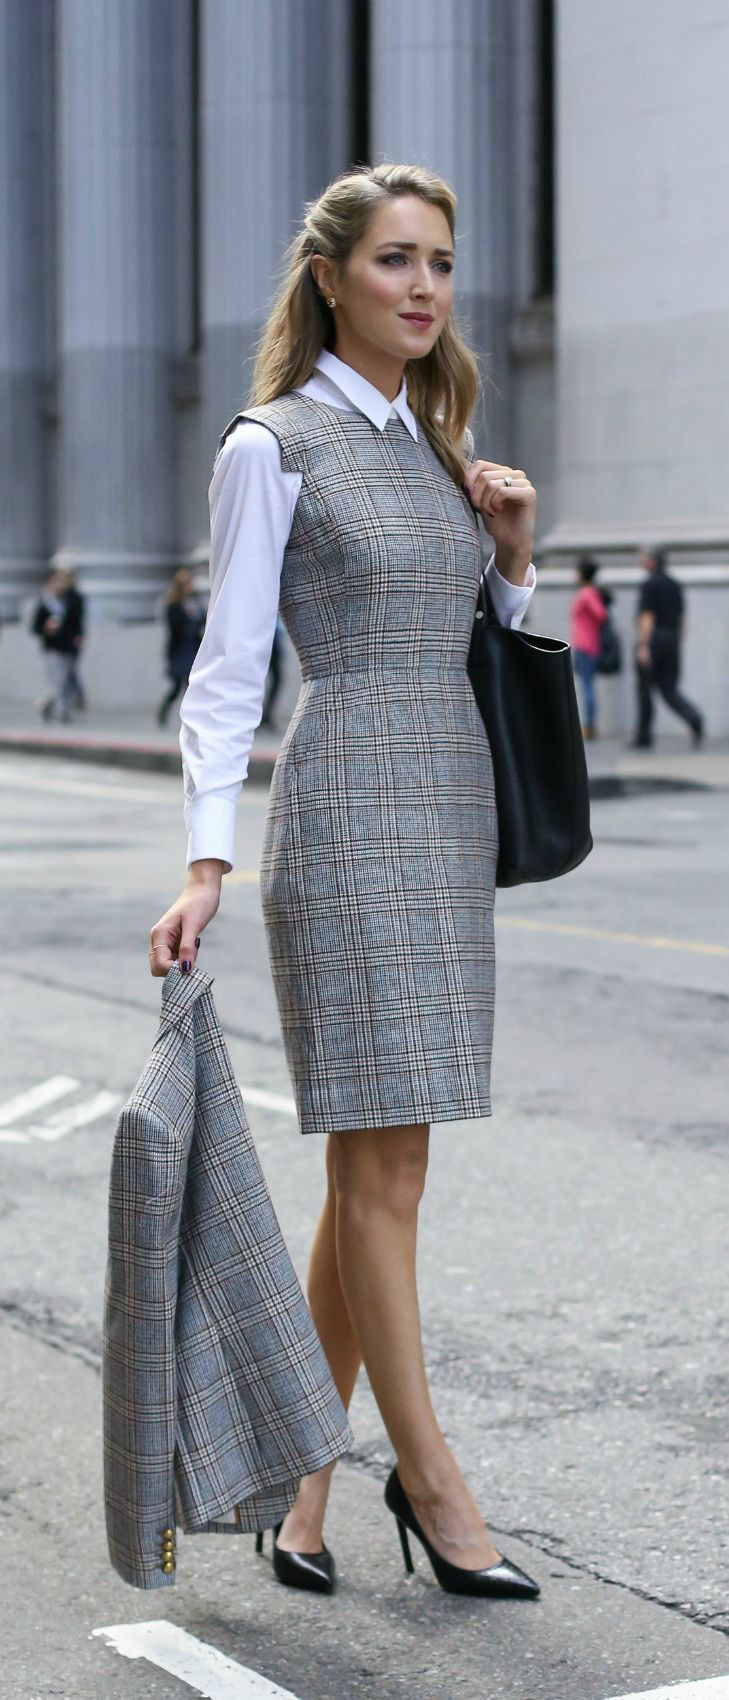 What to wear to fall and winter business formal interviews - Glen plaid sheath dress with coordinating suit jacket layered over white button down shirt and classic black pumps